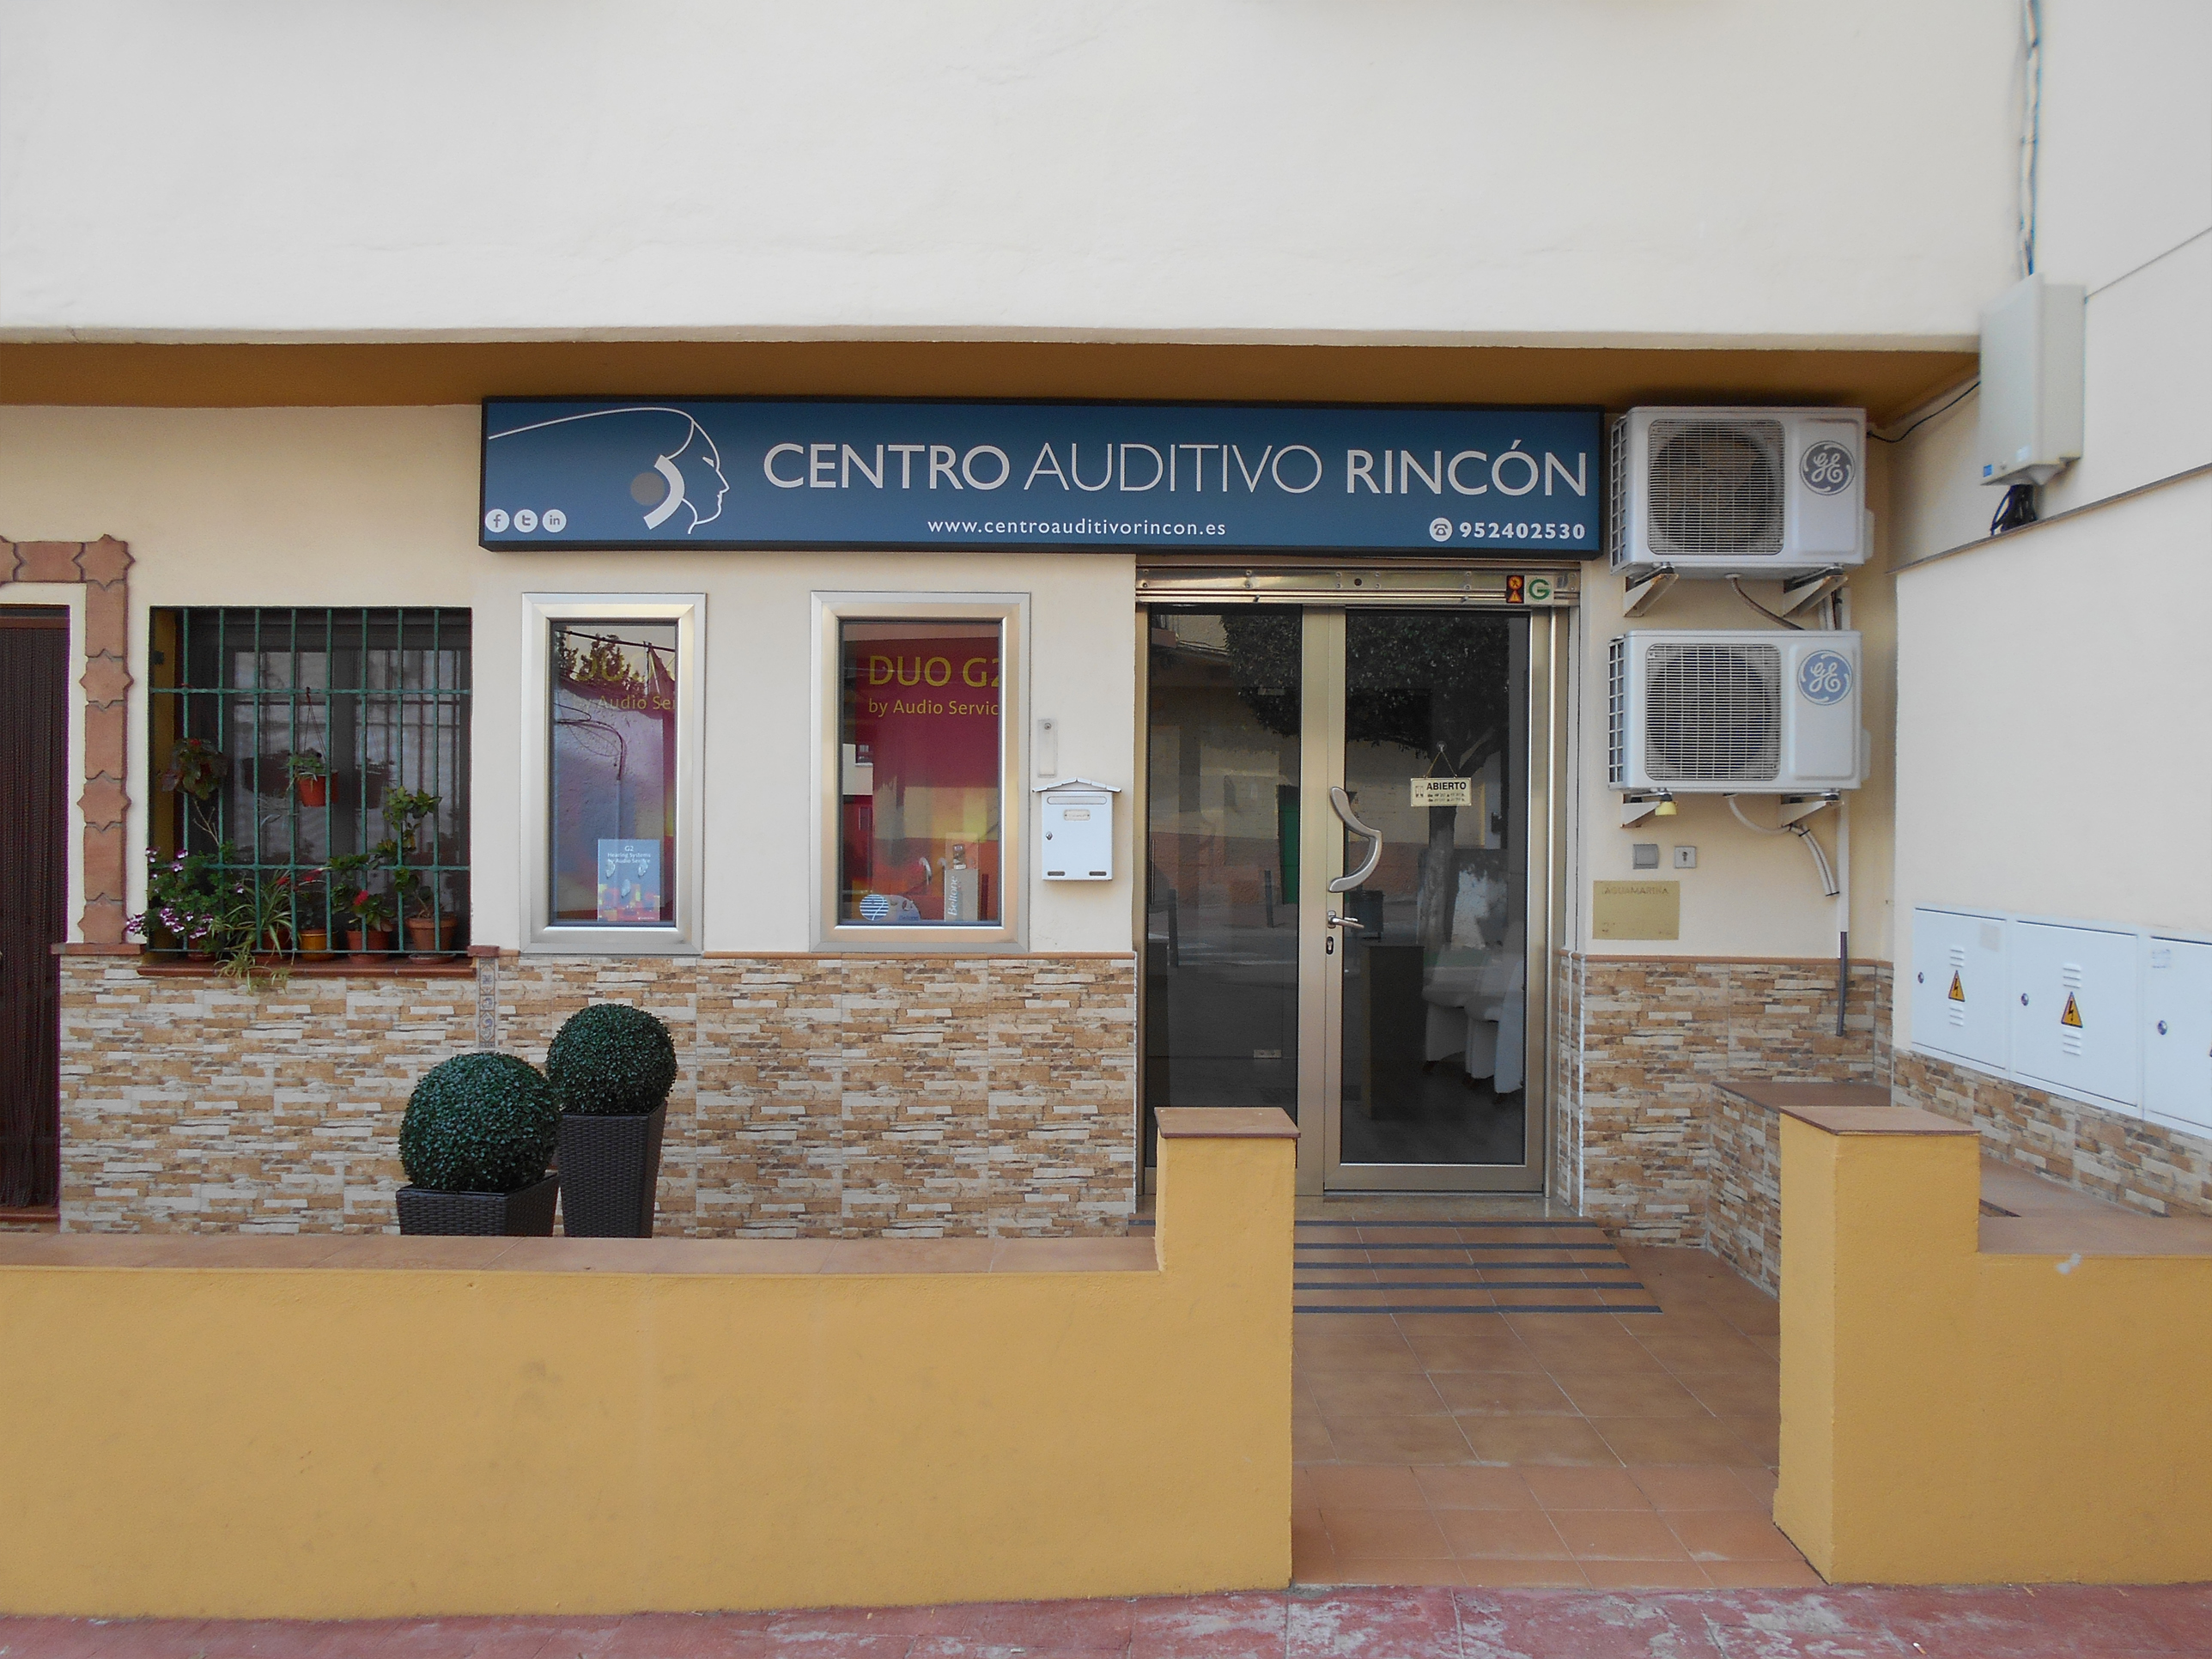 Centro Auditivo Rincón